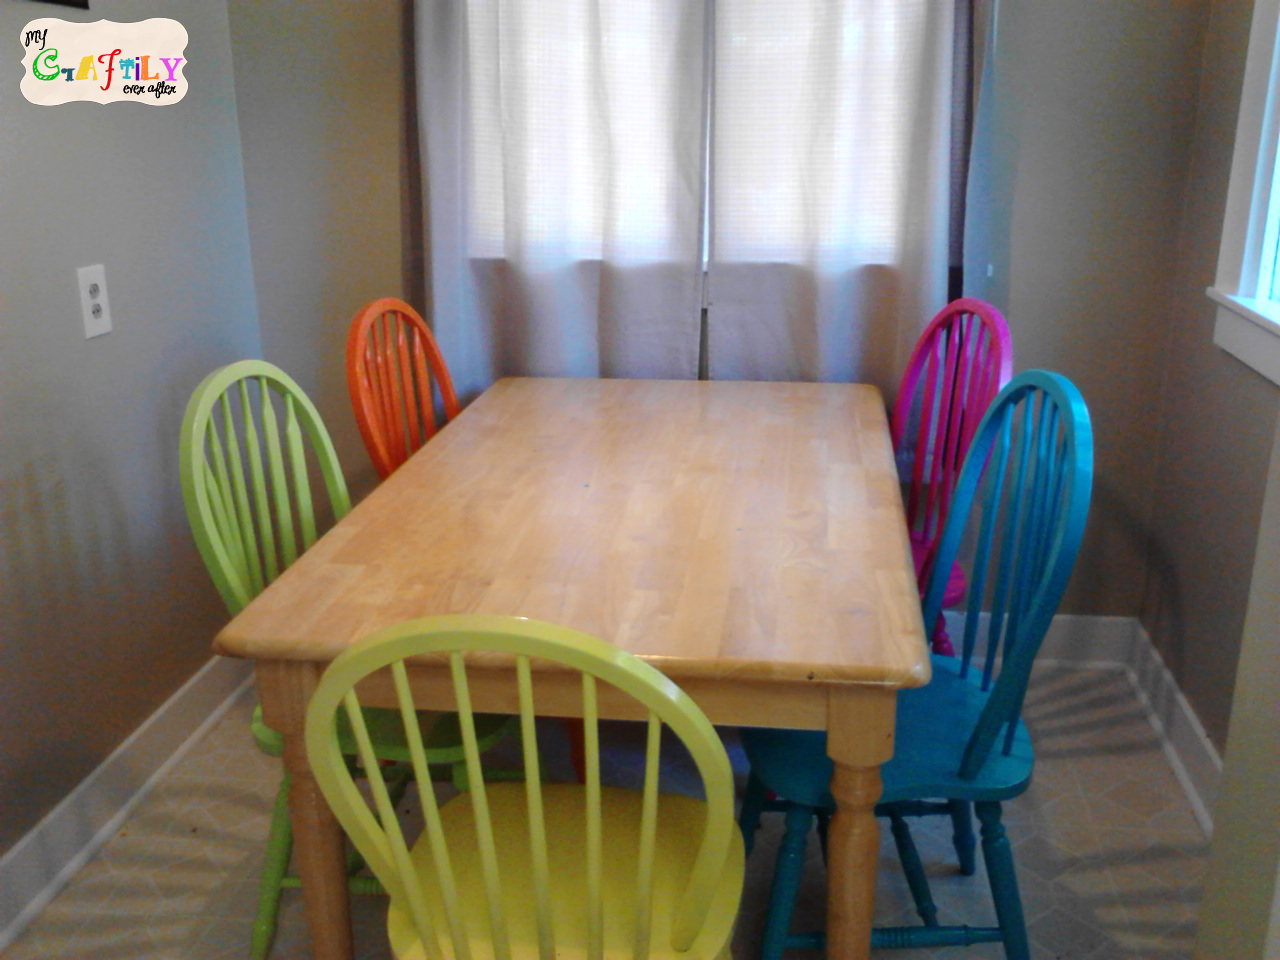 fiesta chairs at dining room table